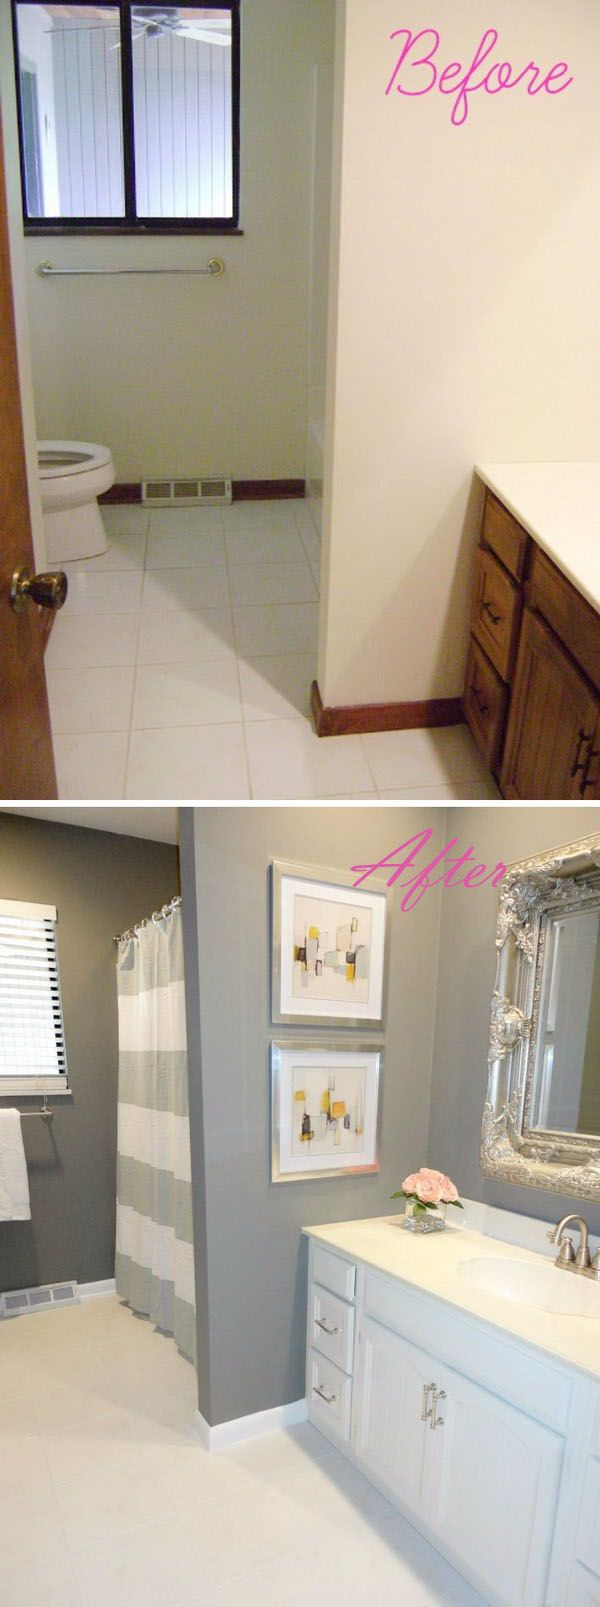 Best 25+ Guest Bathroom Remodel Ideas On Pinterest | Bathroom Renos, Guest  Bath And Restroom Ideas